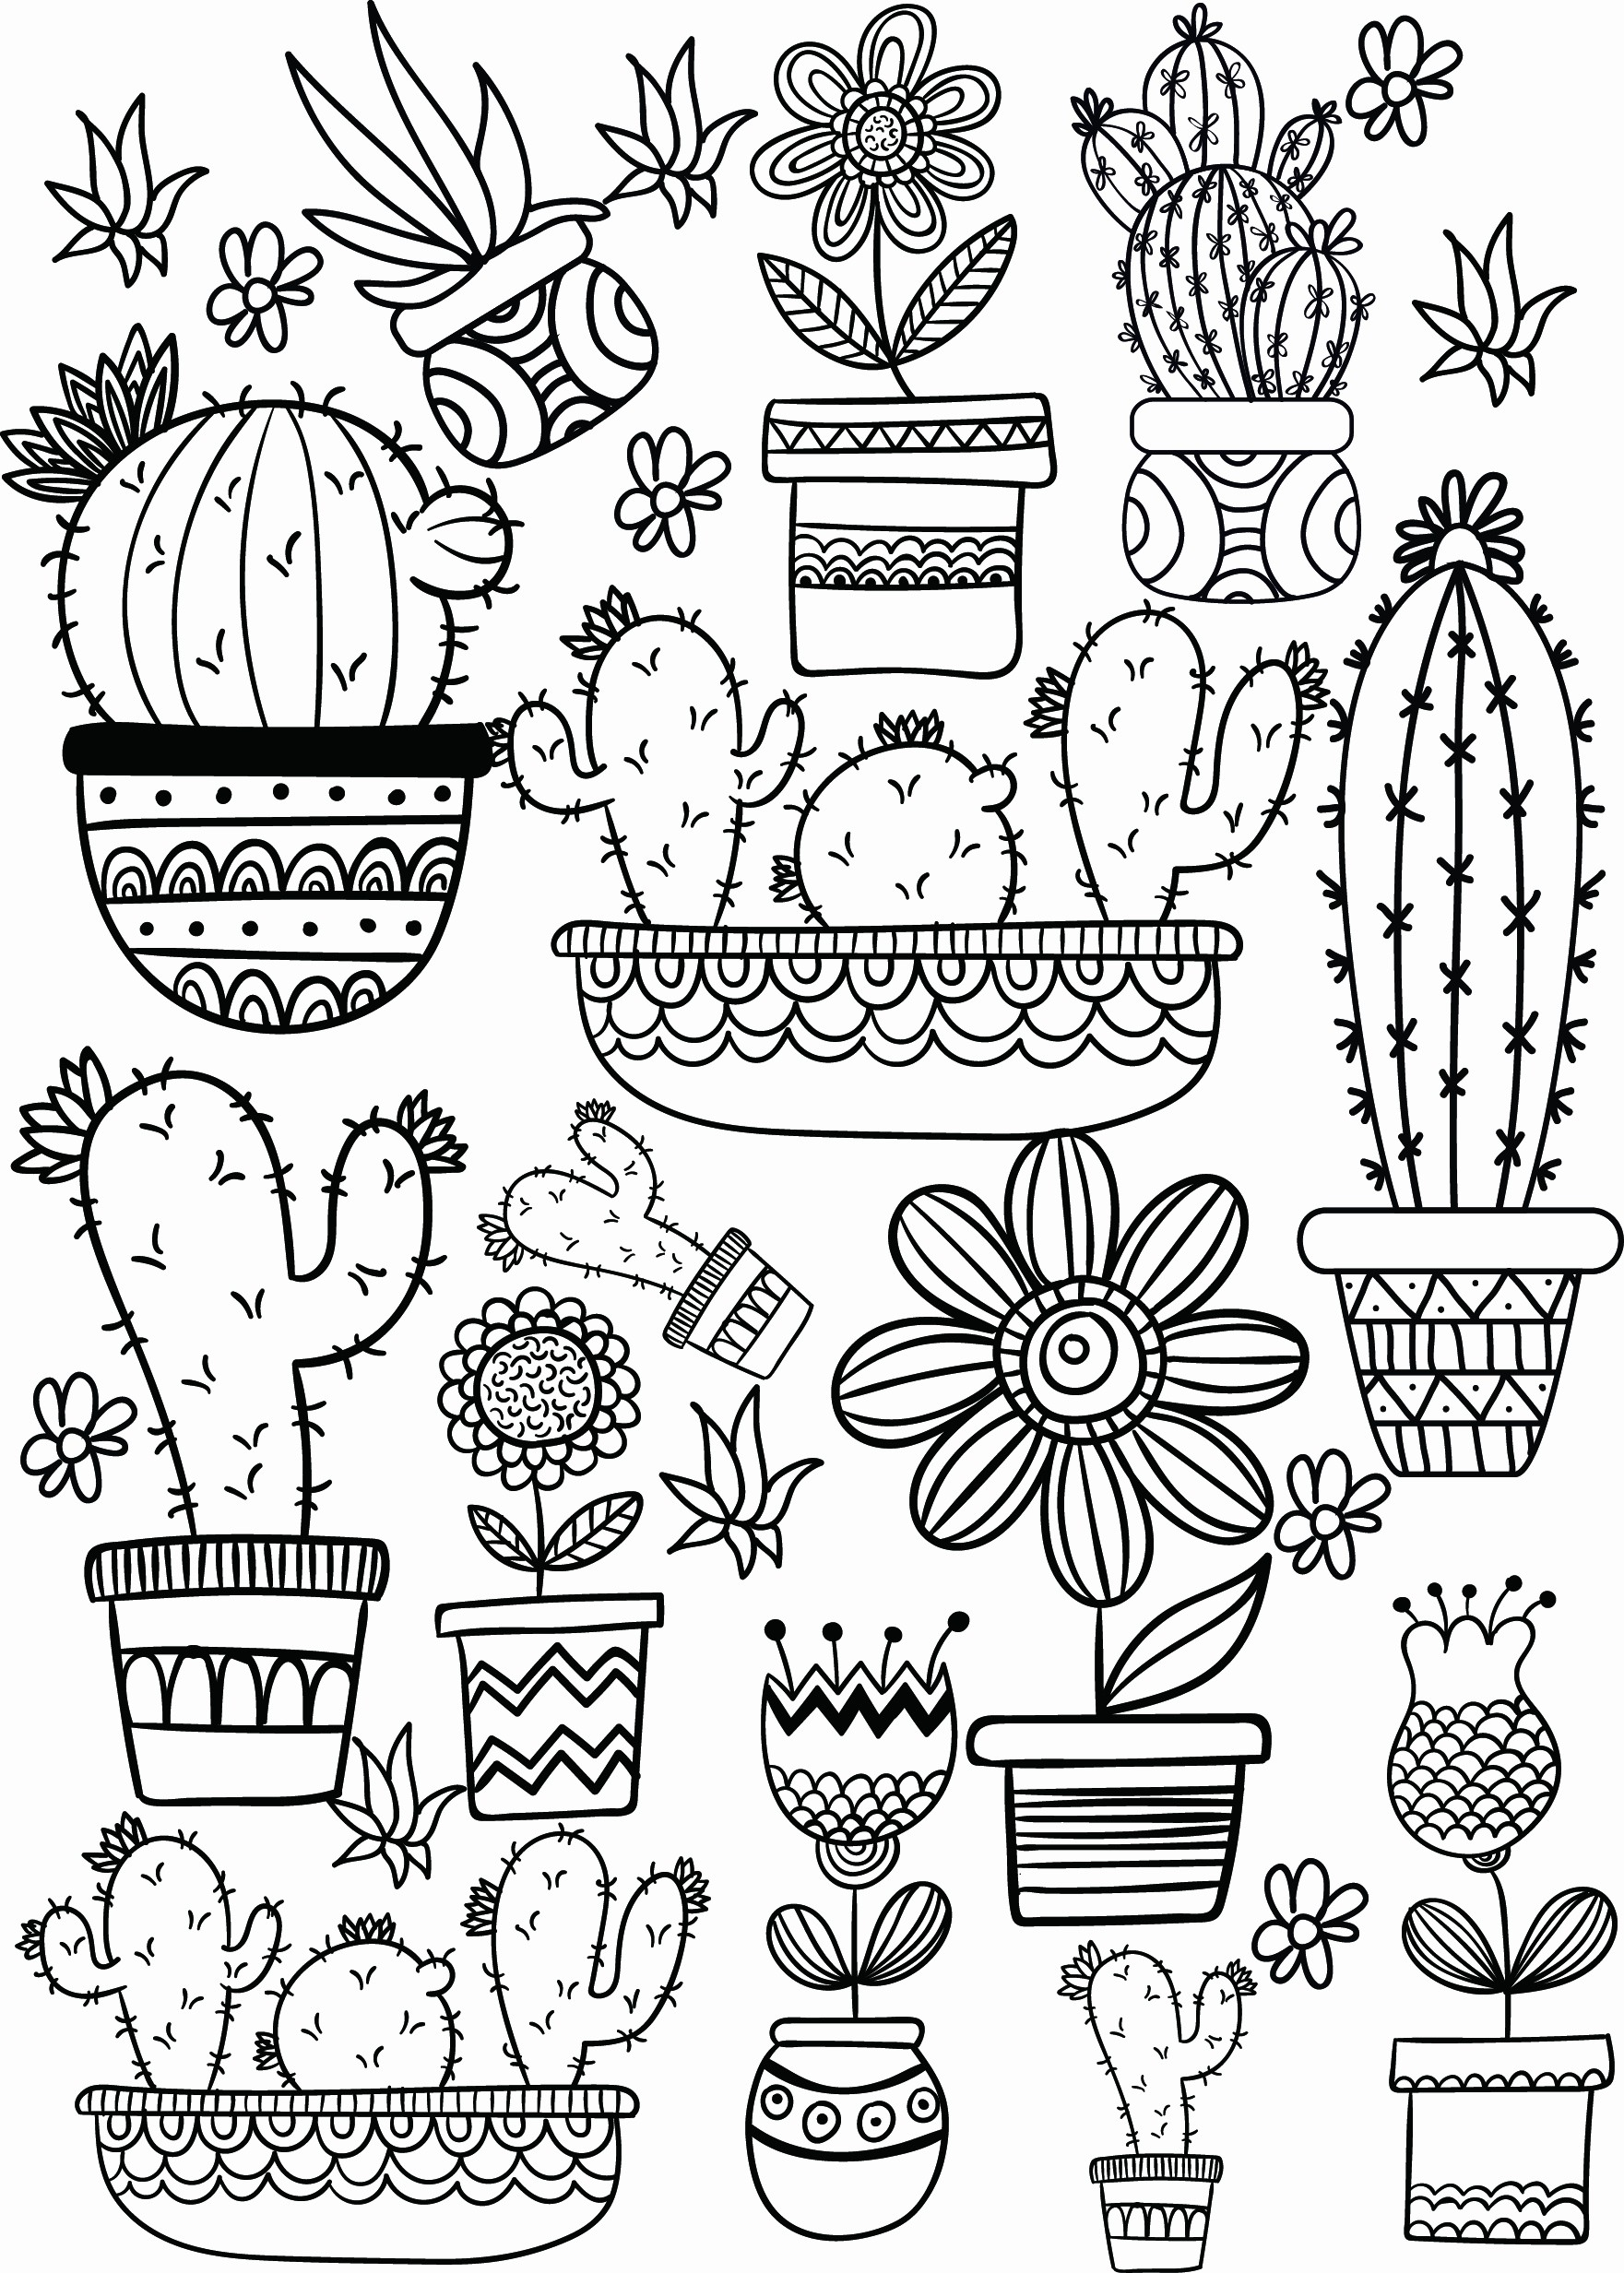 Live Com Sign In Page Elegant Professional Cactus Coloring Sheet Page Preschool In